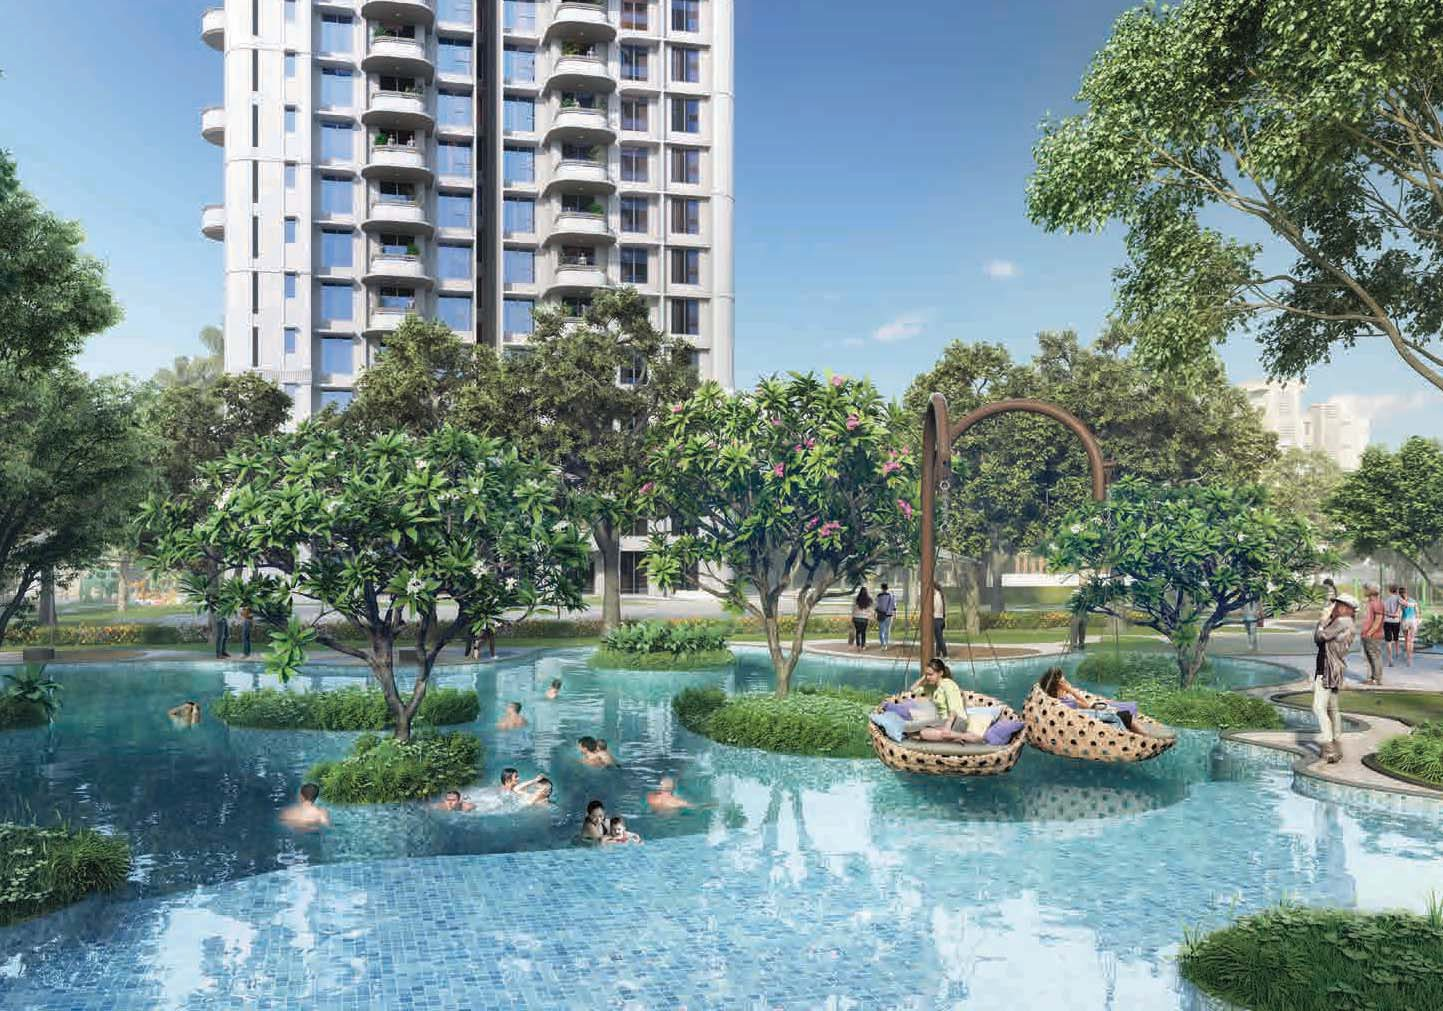 lodha bel air project amenities features4